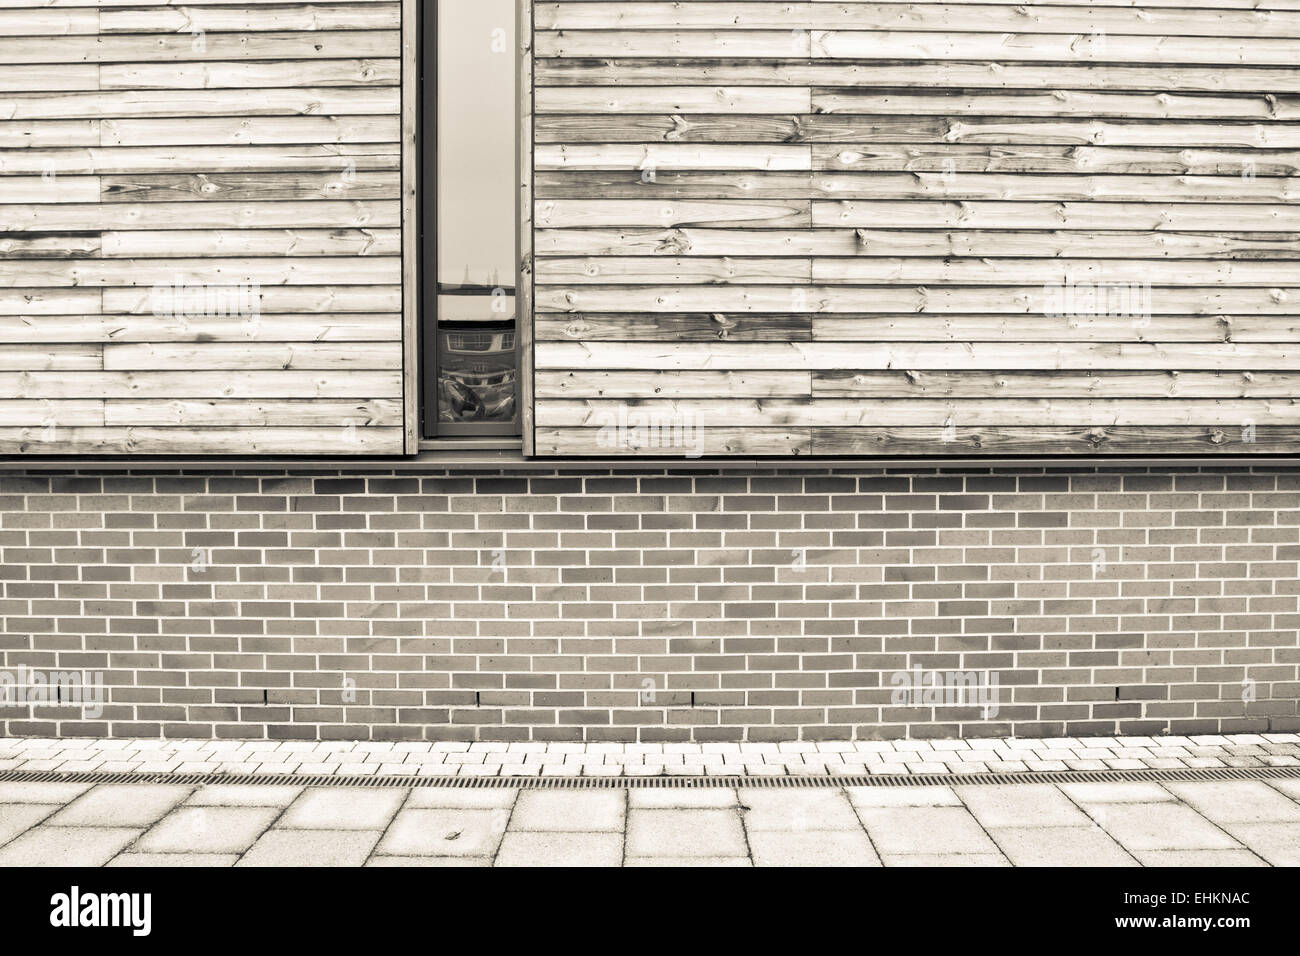 Brick and wooden wall on a modern eco building in sepia tones - Stock Image